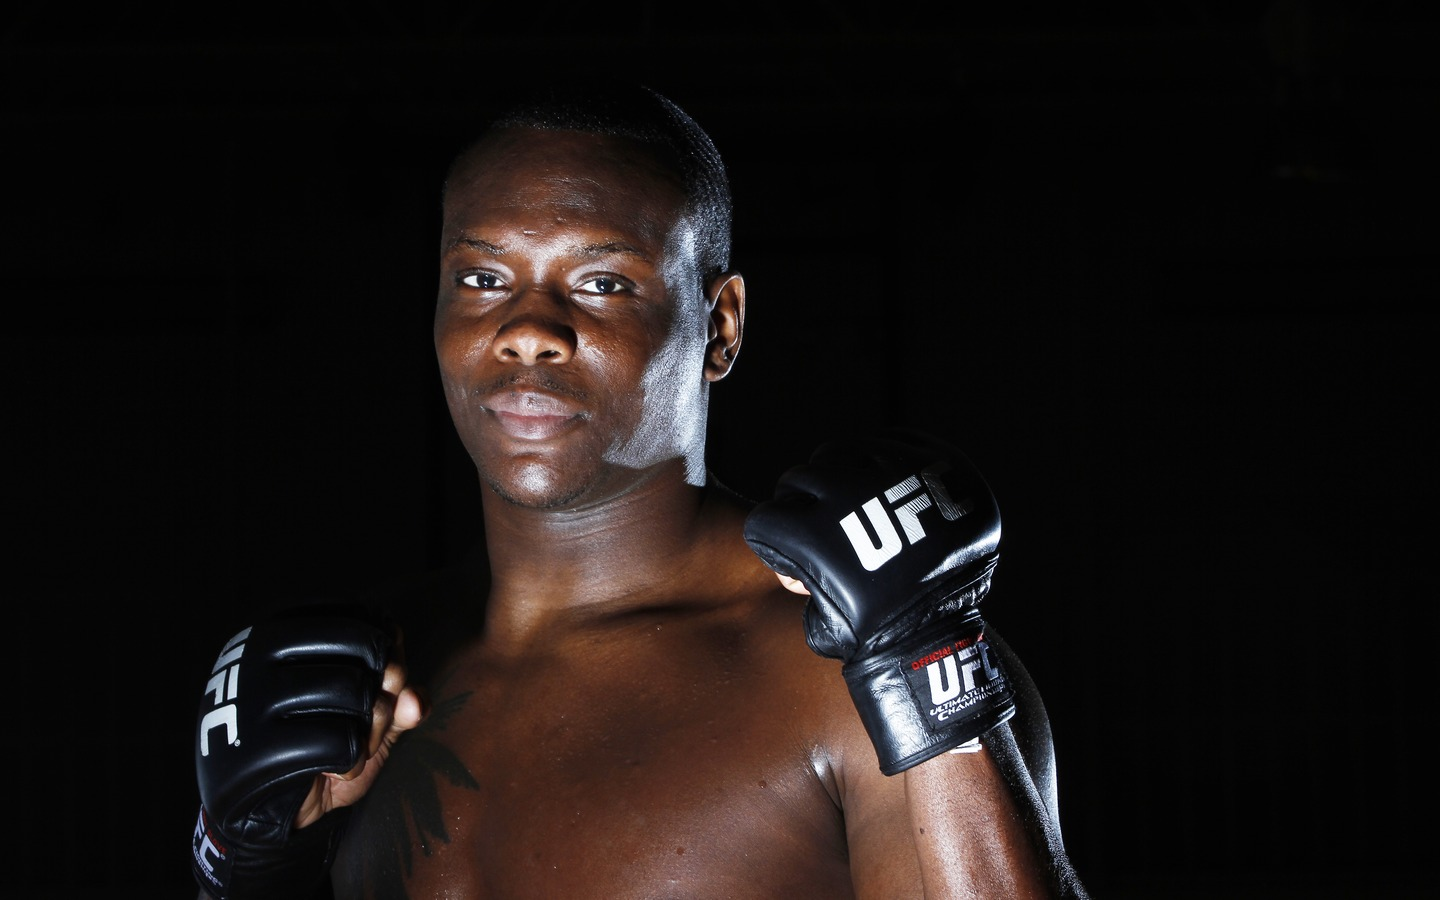 Download wallpaper 1440x900 ovince saint preux ultimate fighting 1440x900